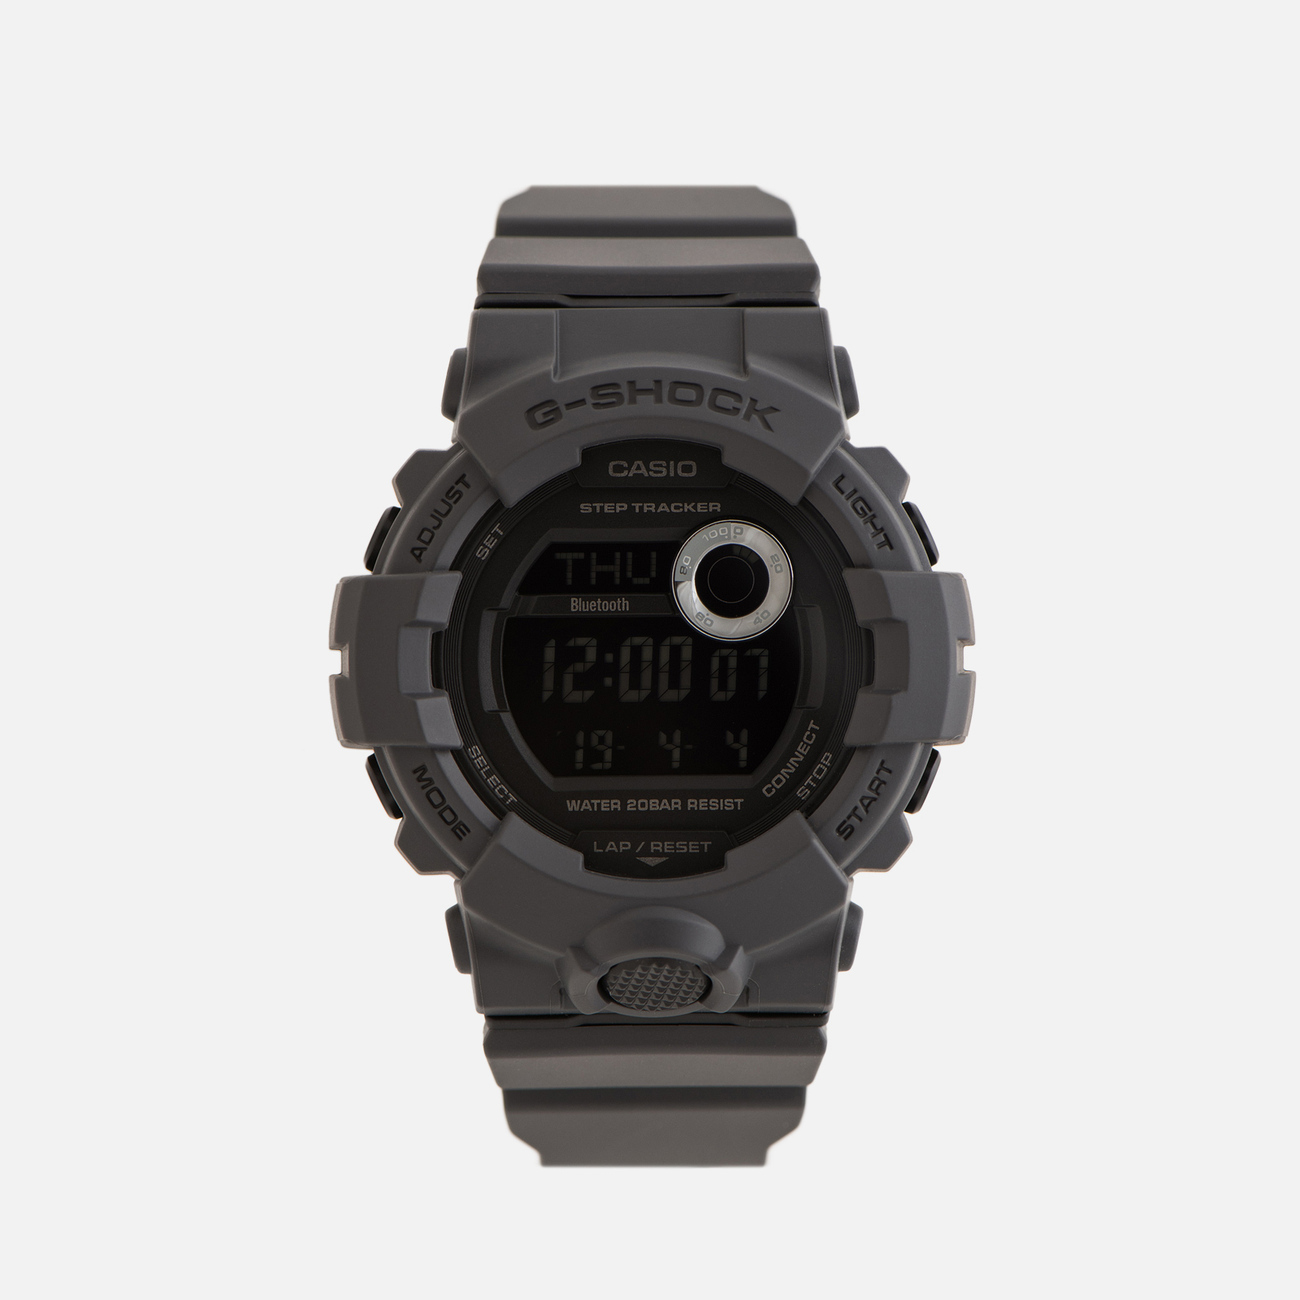 Наручные часы CASIO G-SHOCK GBD-800UC-8ER G-SQUAD Utility Color Grey